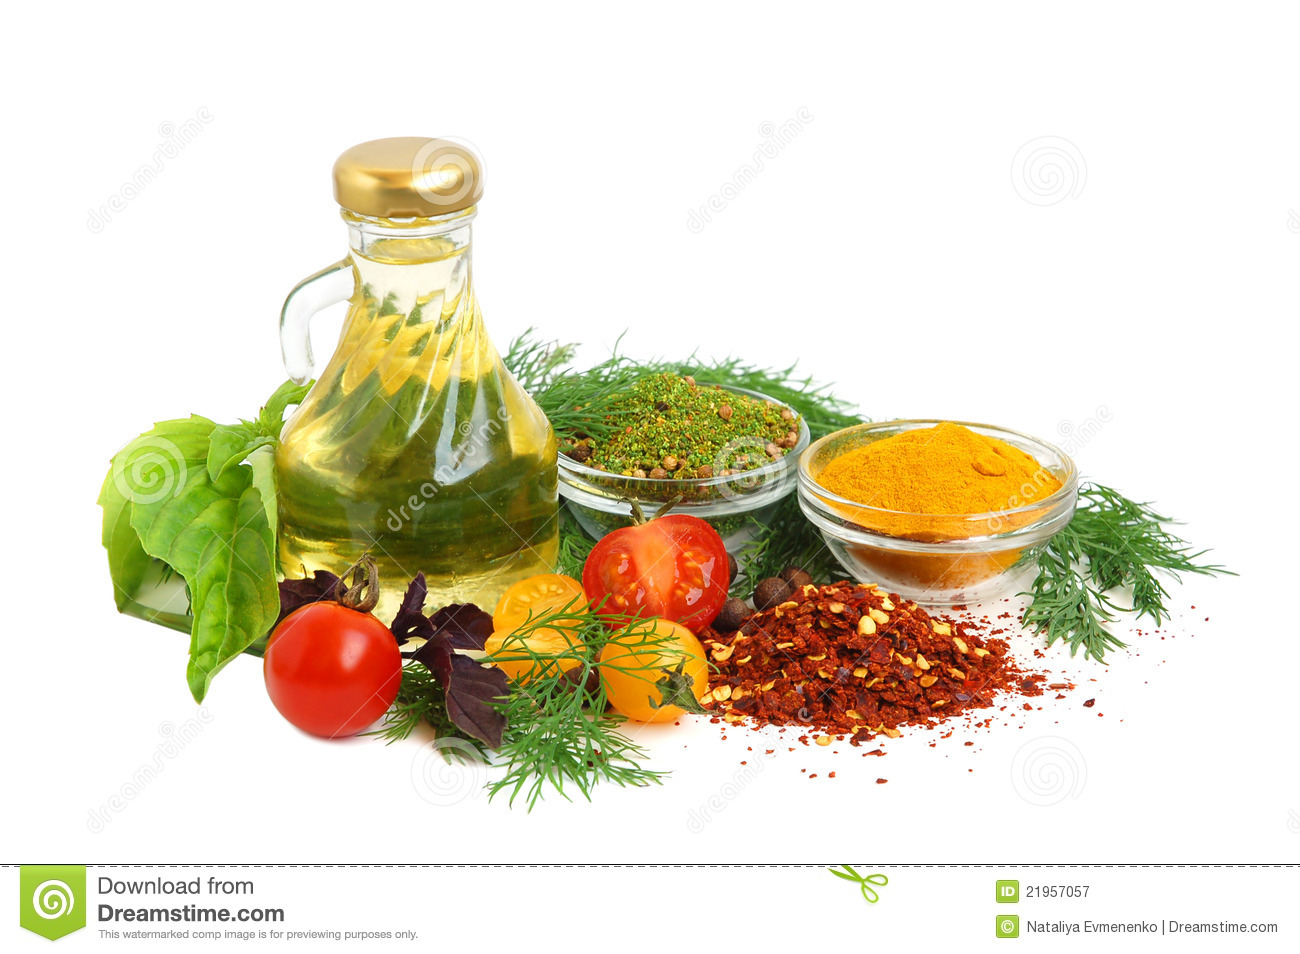 3d Animation Wallpaper Download Ingredients For Cooking Royalty Free Stock Photography